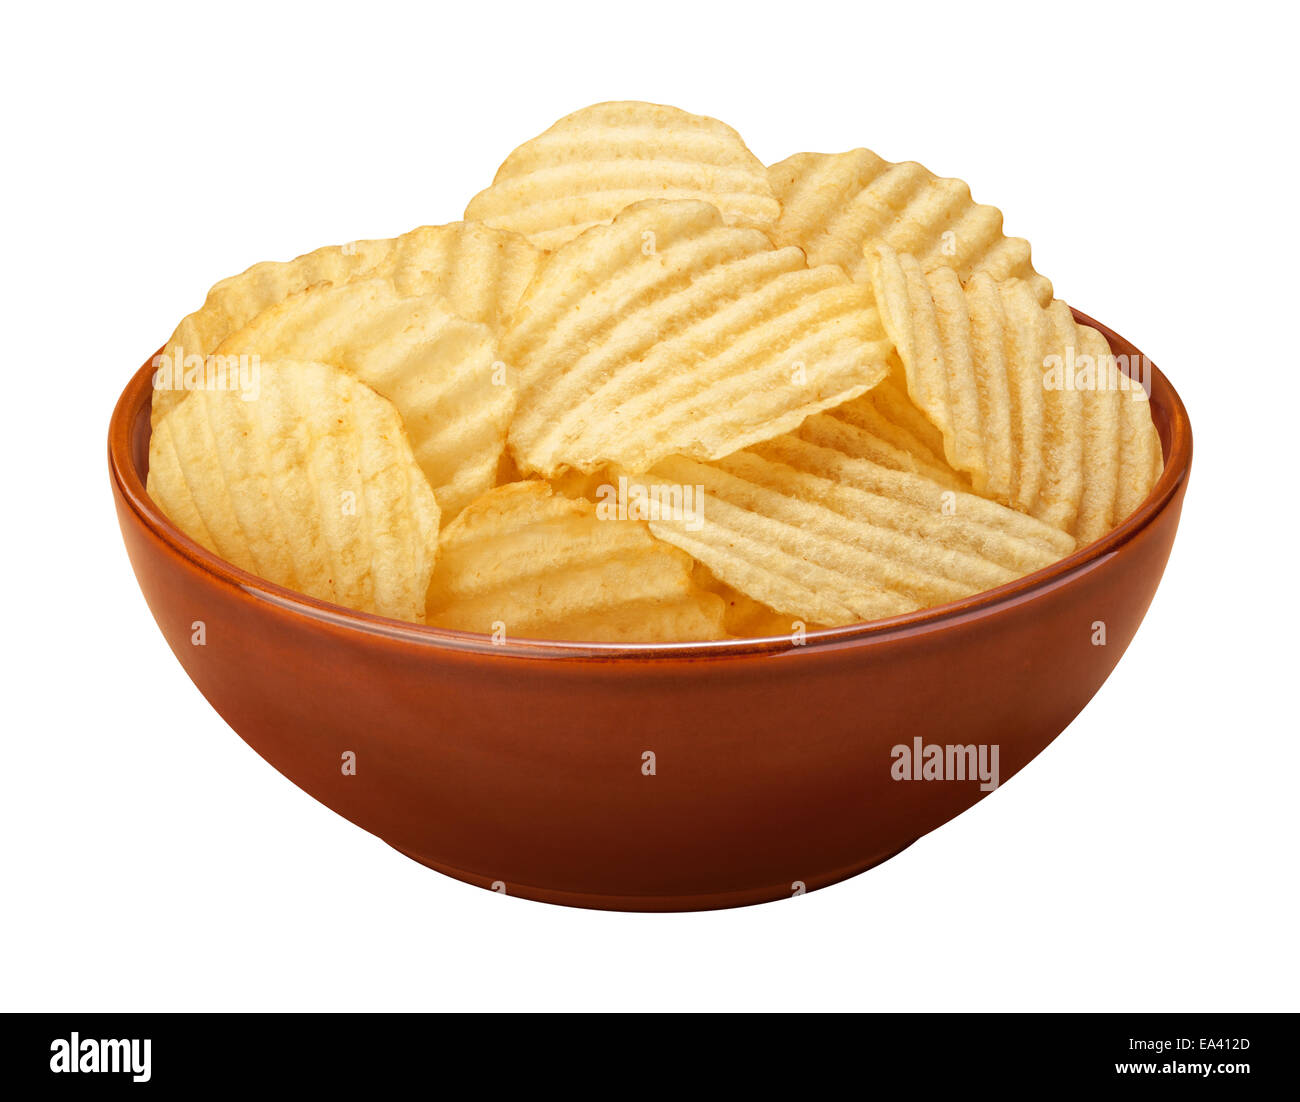 Wavy potato chips with ridges, sometimes called ruffles, in a brown ceramic bowl isolated on a white background. - Stock Image